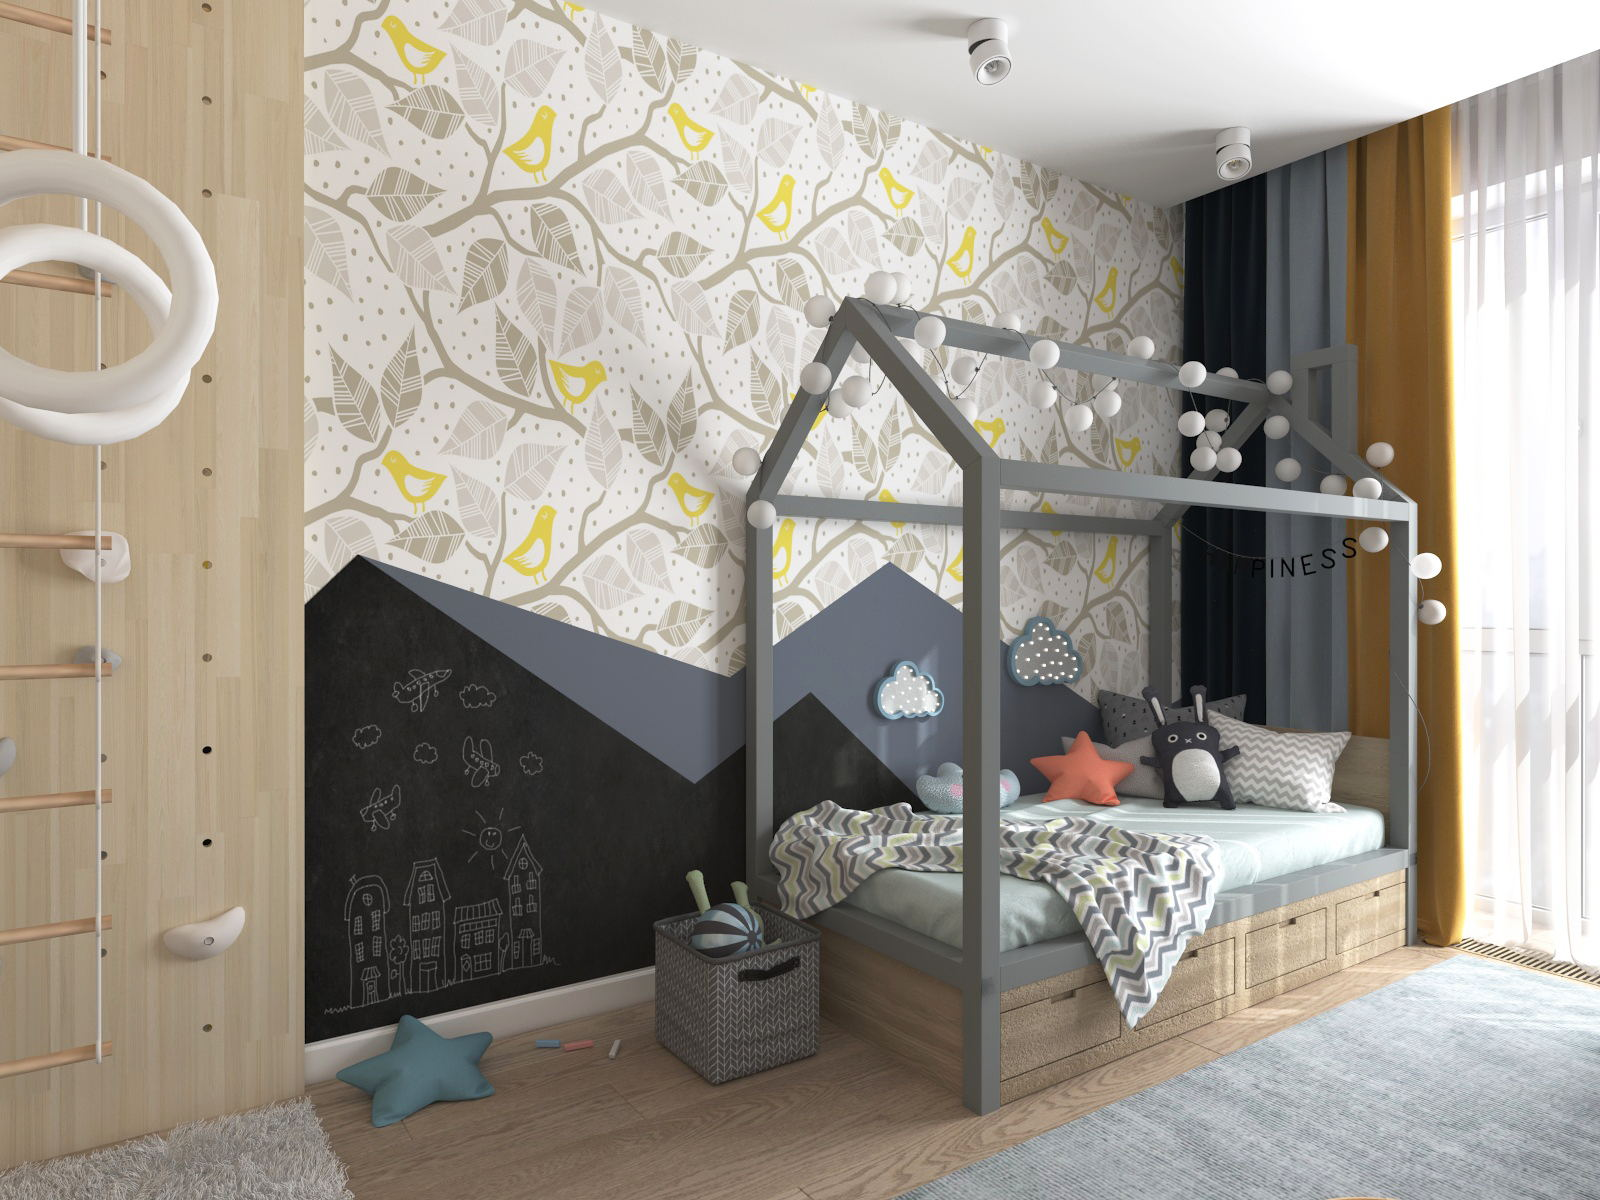 Horosh-kids_room_View001.jpg